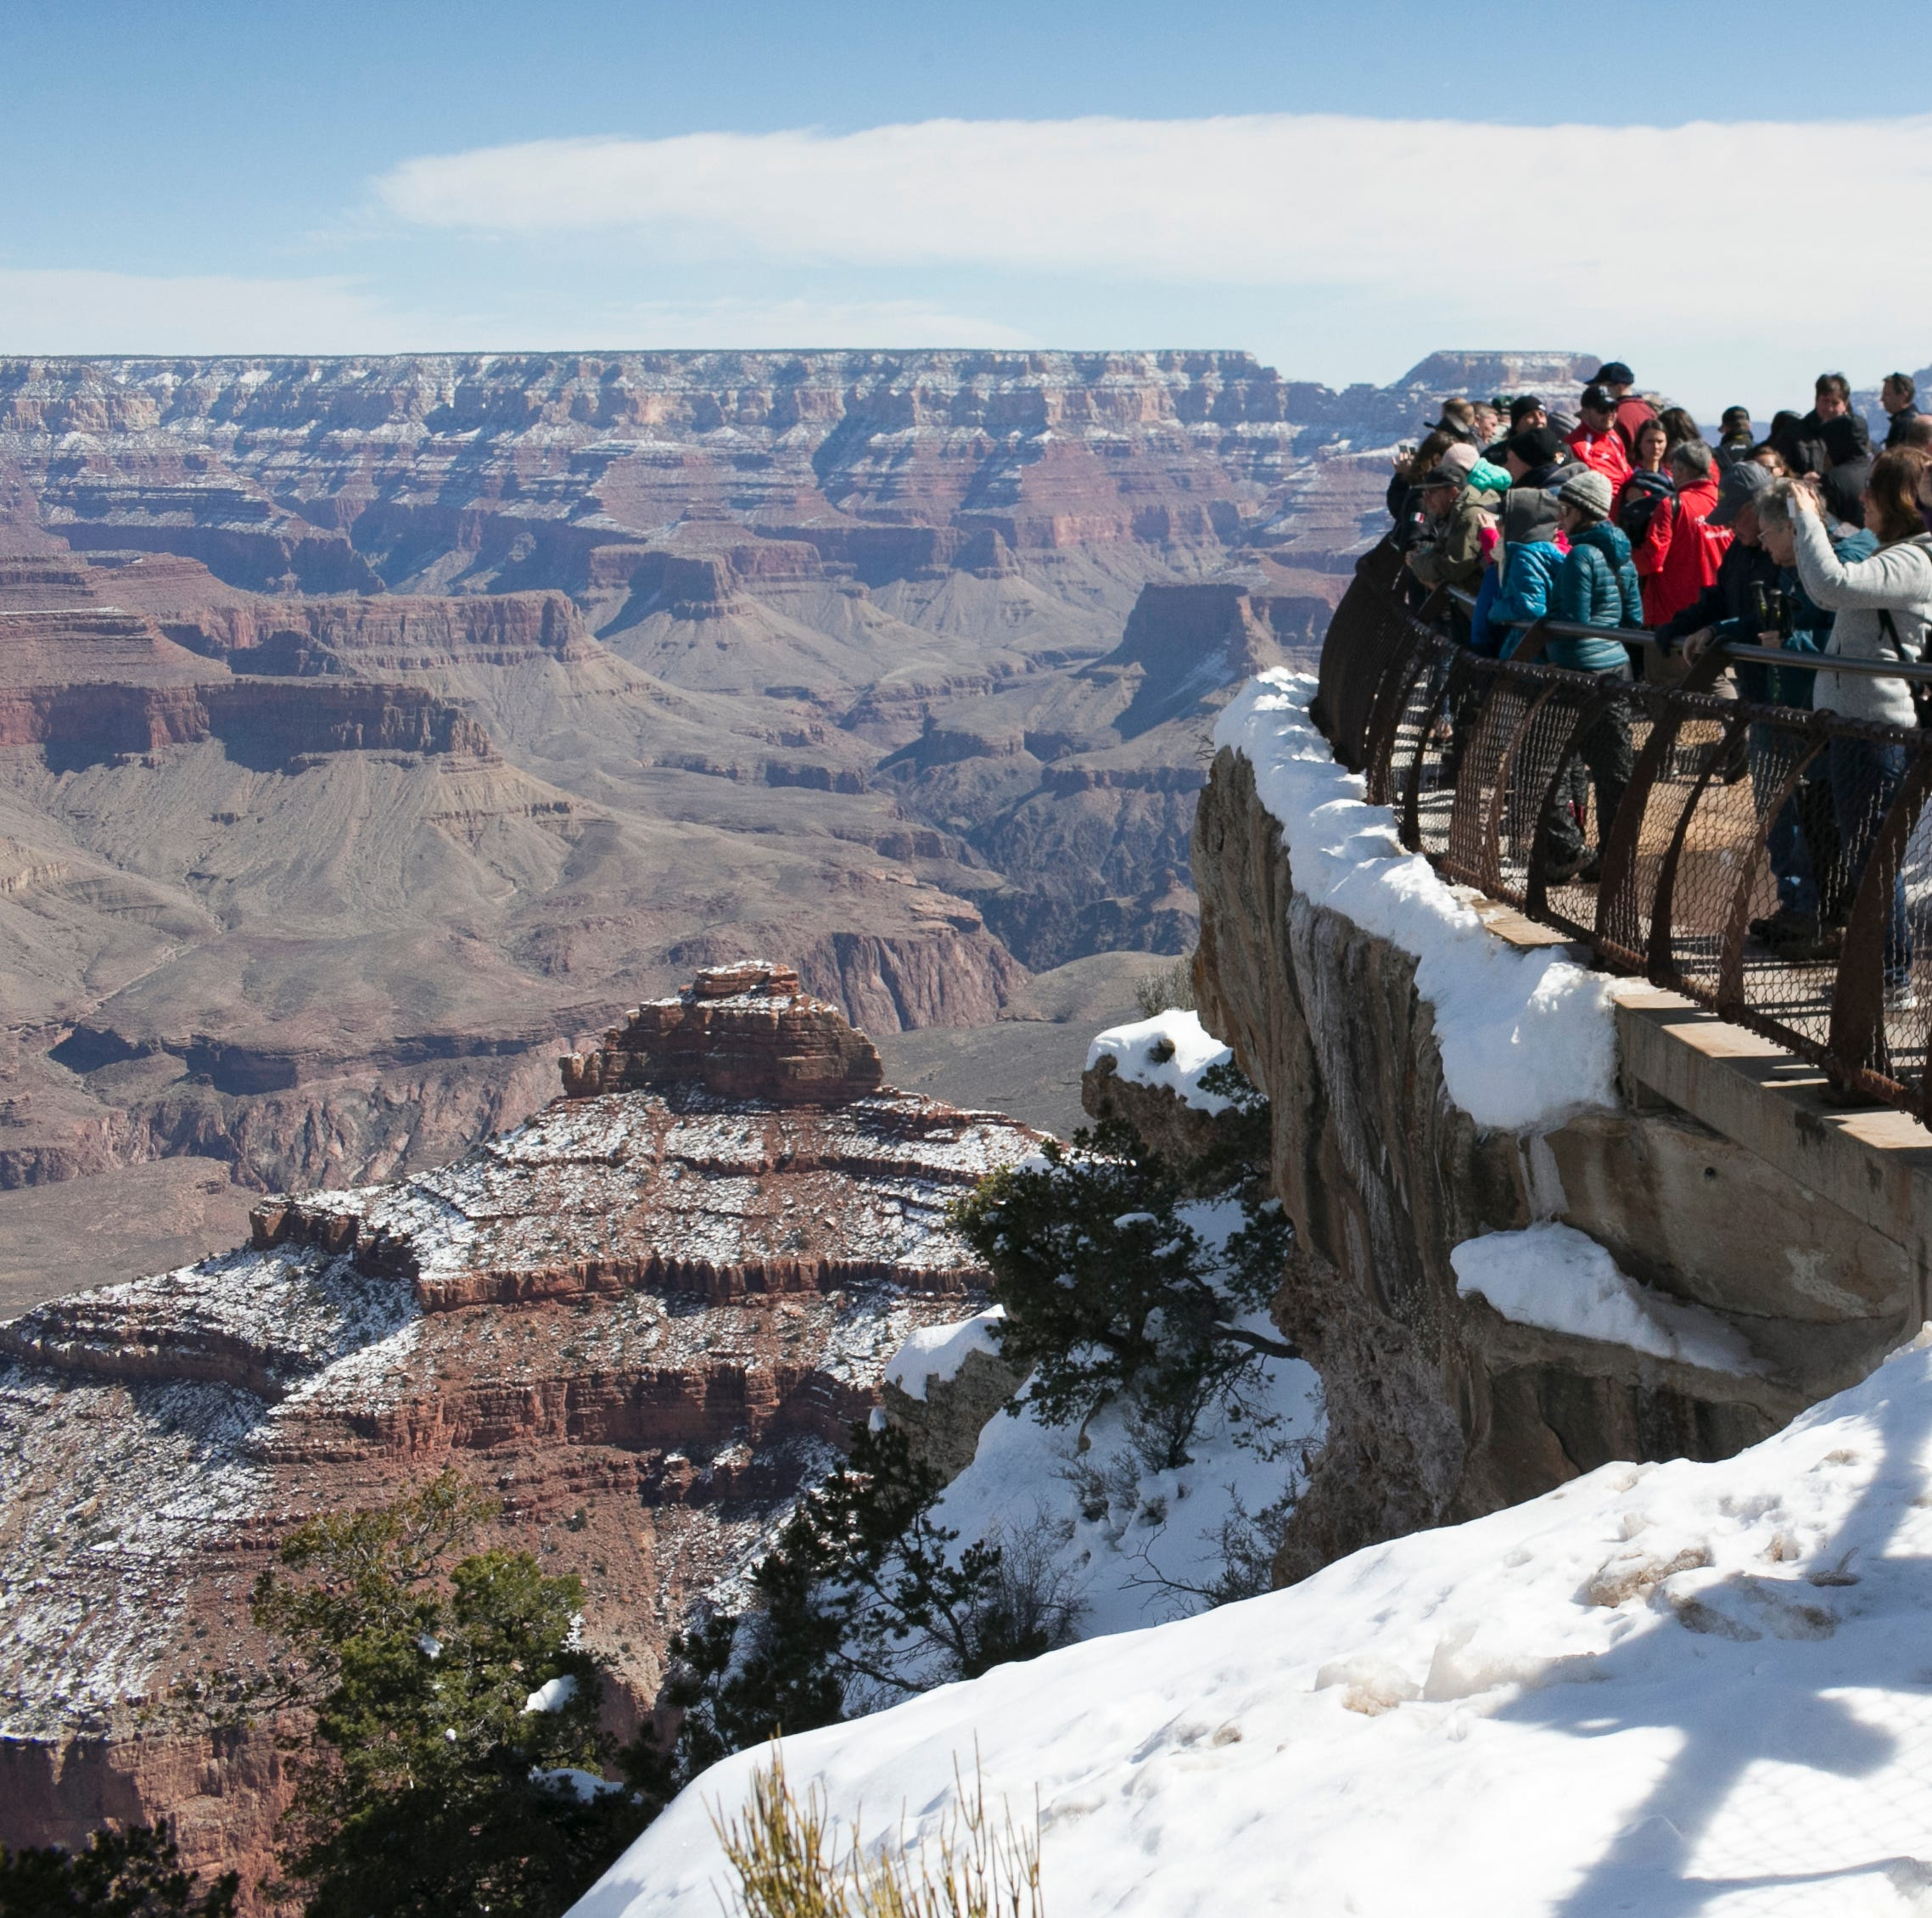 Fatal falls at the Grand Canyon? Sadly, it's nothing new